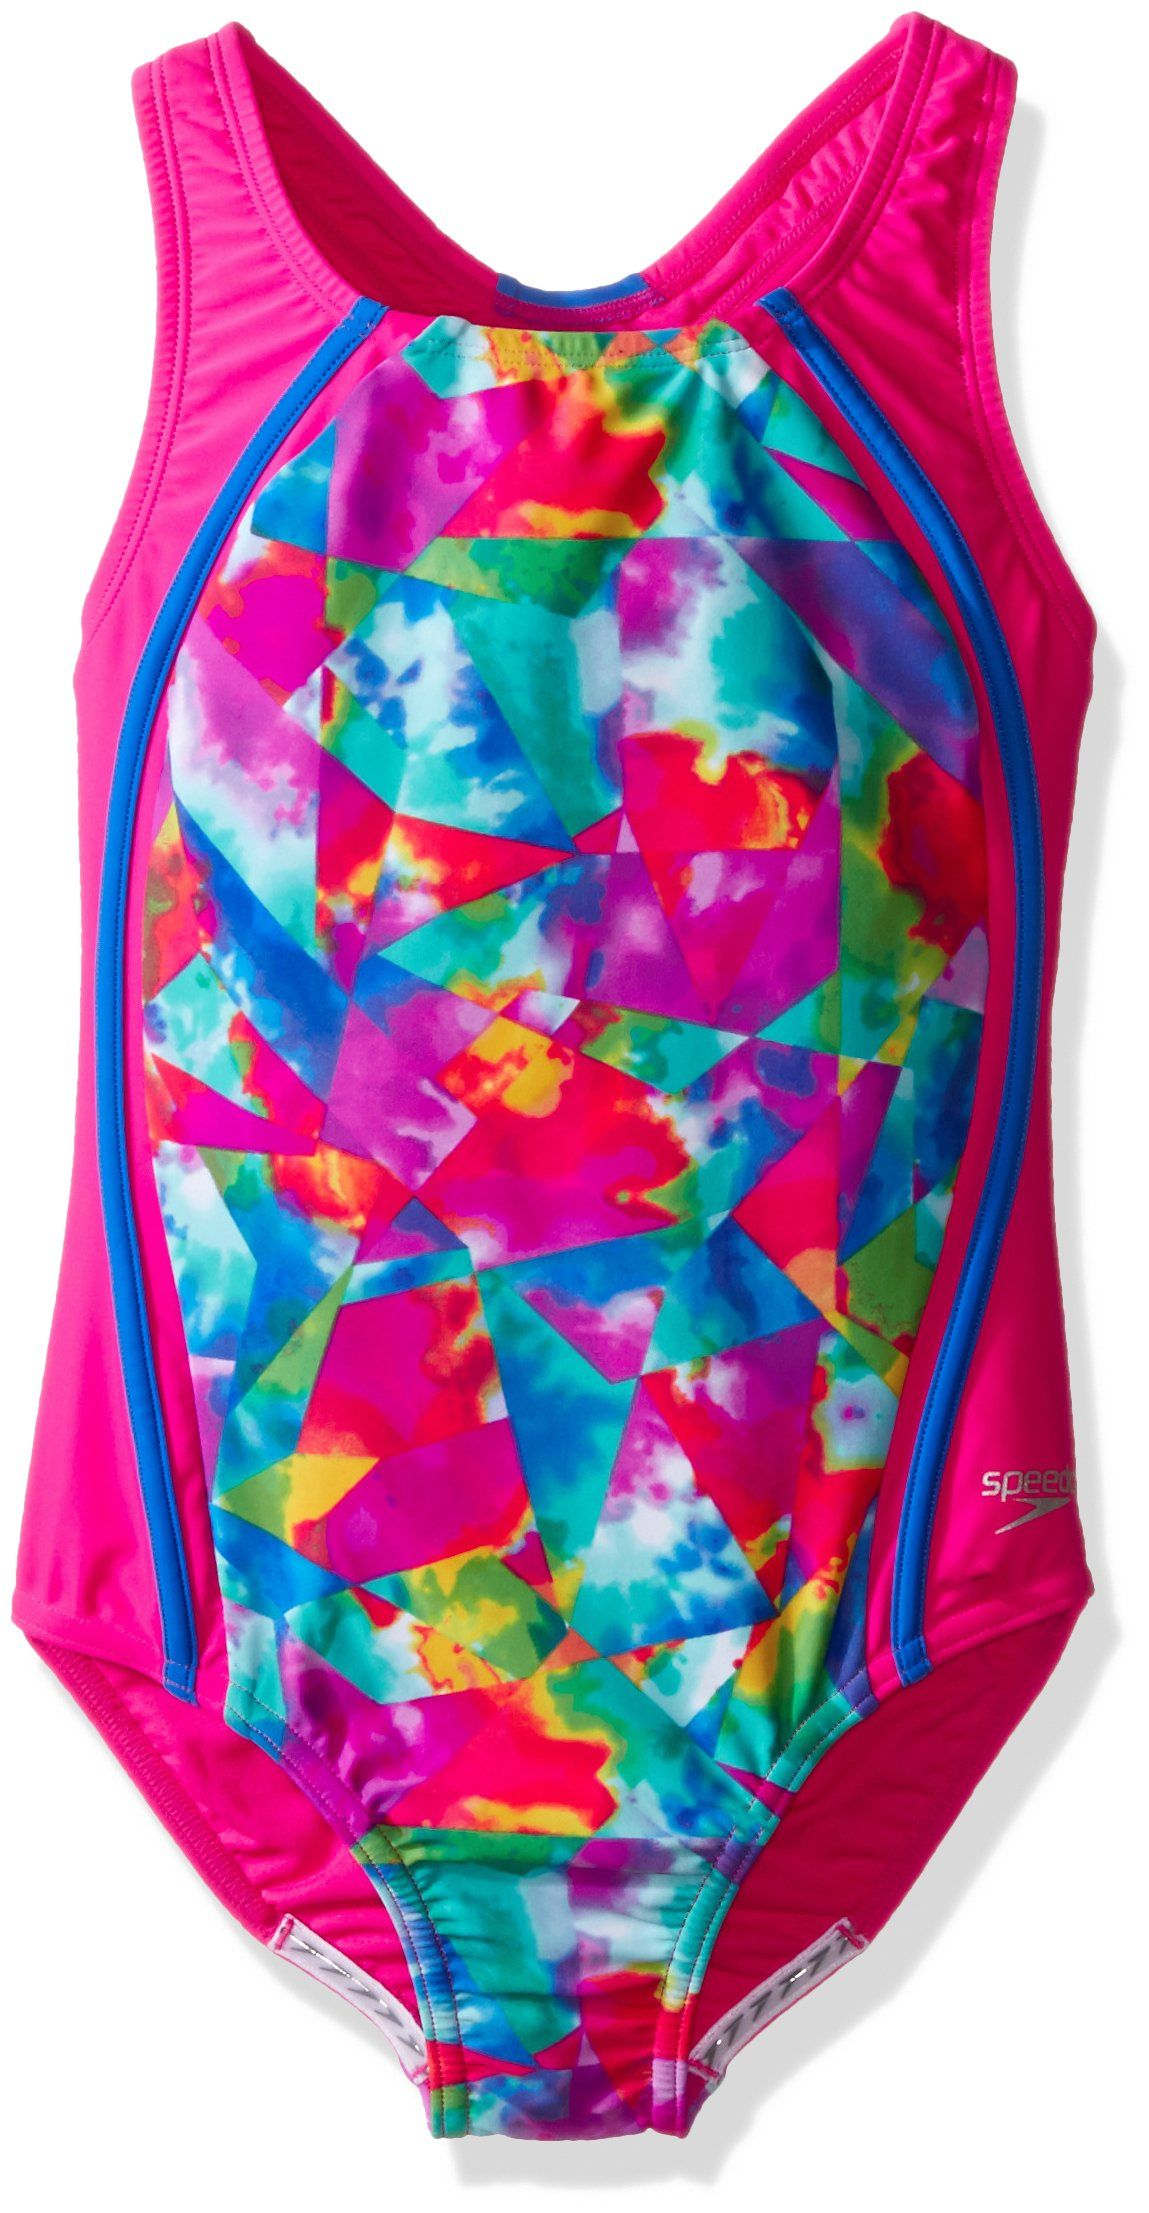 83741d681511d Speedo Girls Tie Dye Sky Sport Splice One Piece Swimsuit, Size 7,  Multicolor.